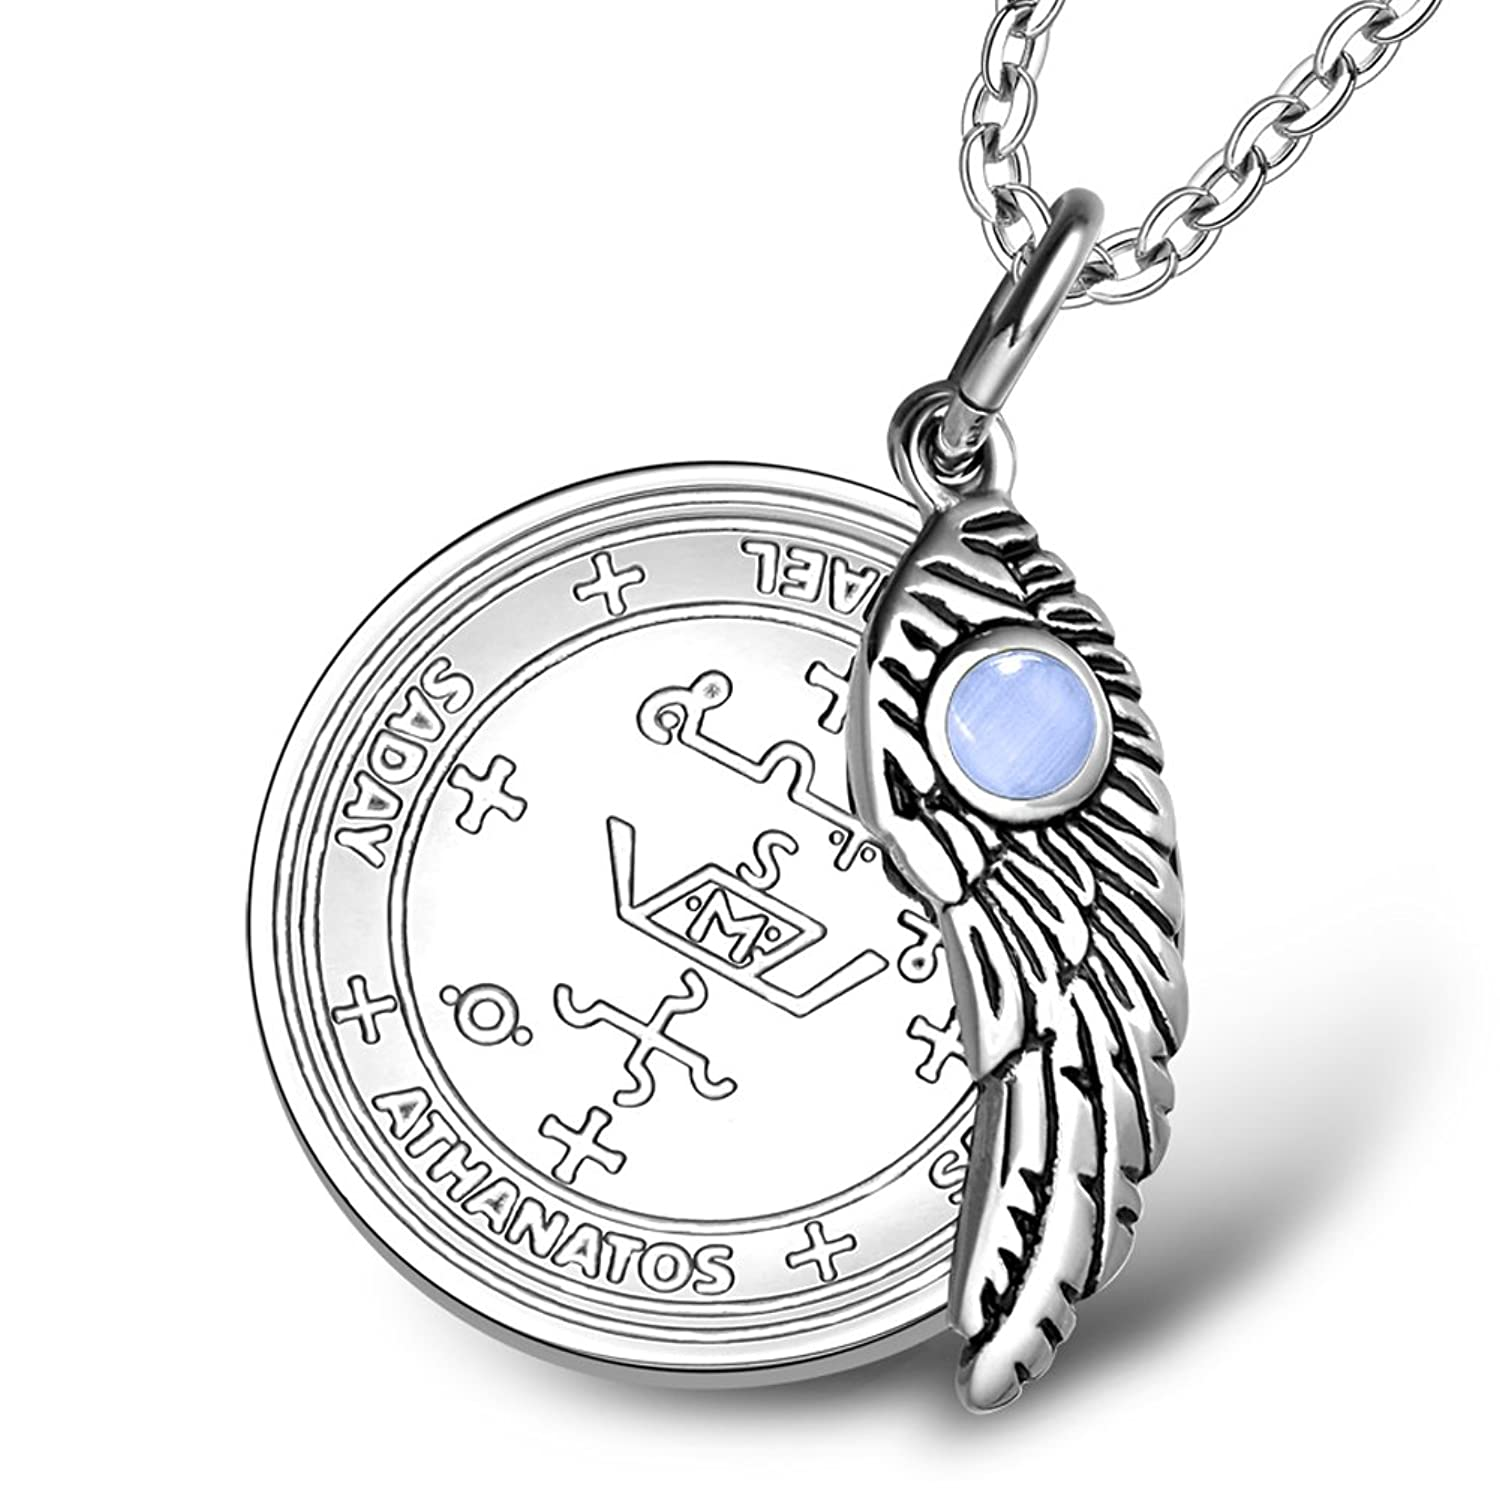 Amazon archangel michael sigil amulet magic powers angel wing amazon archangel michael sigil amulet magic powers angel wing charm sky blue simulated cats eye 18 inch necklace jewelry biocorpaavc Images